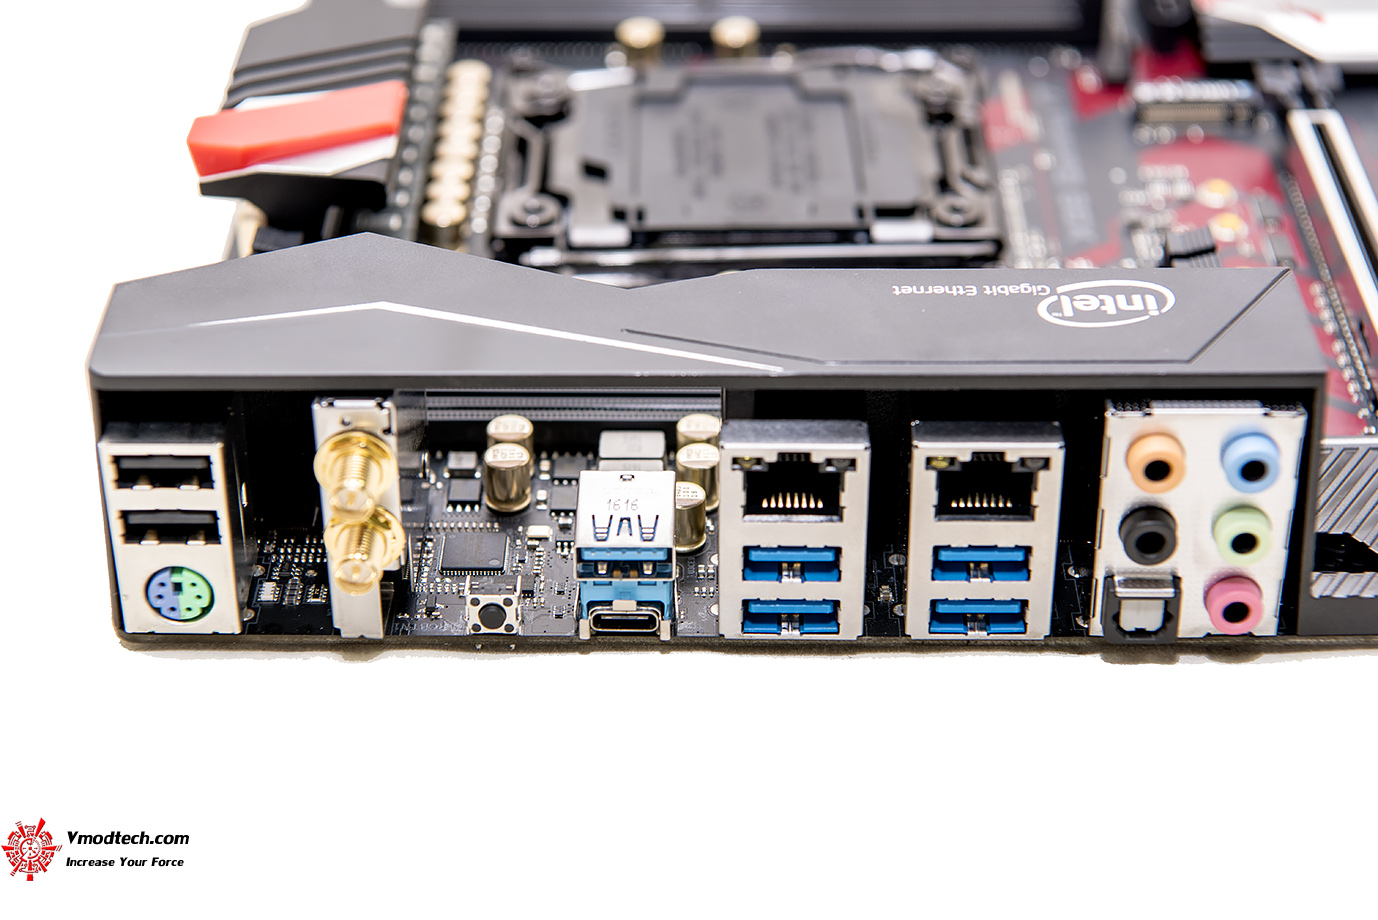 dsc 2005 ASRock Fatal1ty X99 Professional Gaming i7 Motherboard Review